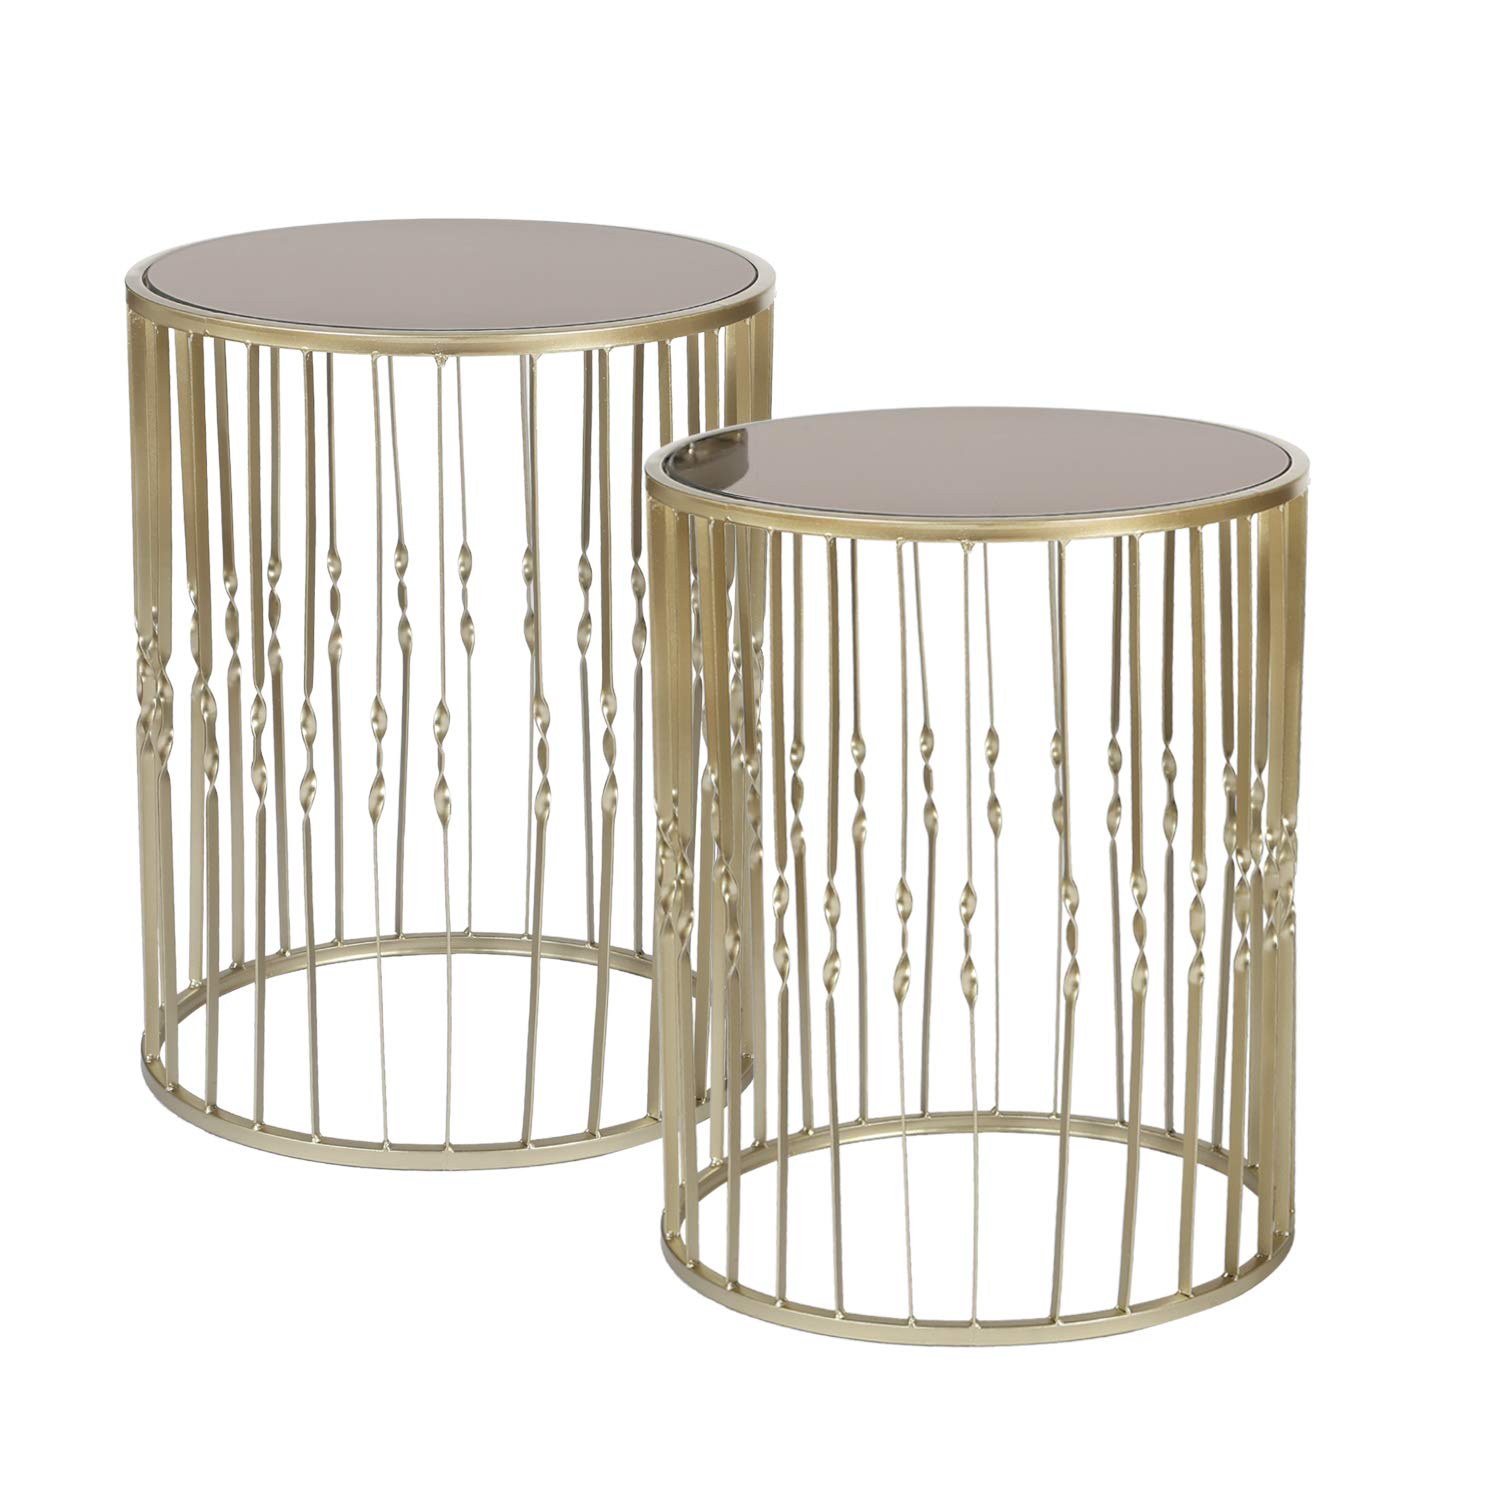 Adeco Decorative Nesting Round Side Accent Plant Stand Chair for Bedroom, Living Room and Patio, Set of 2 End Tables, Champagne Silver,Black Glass by Adeco